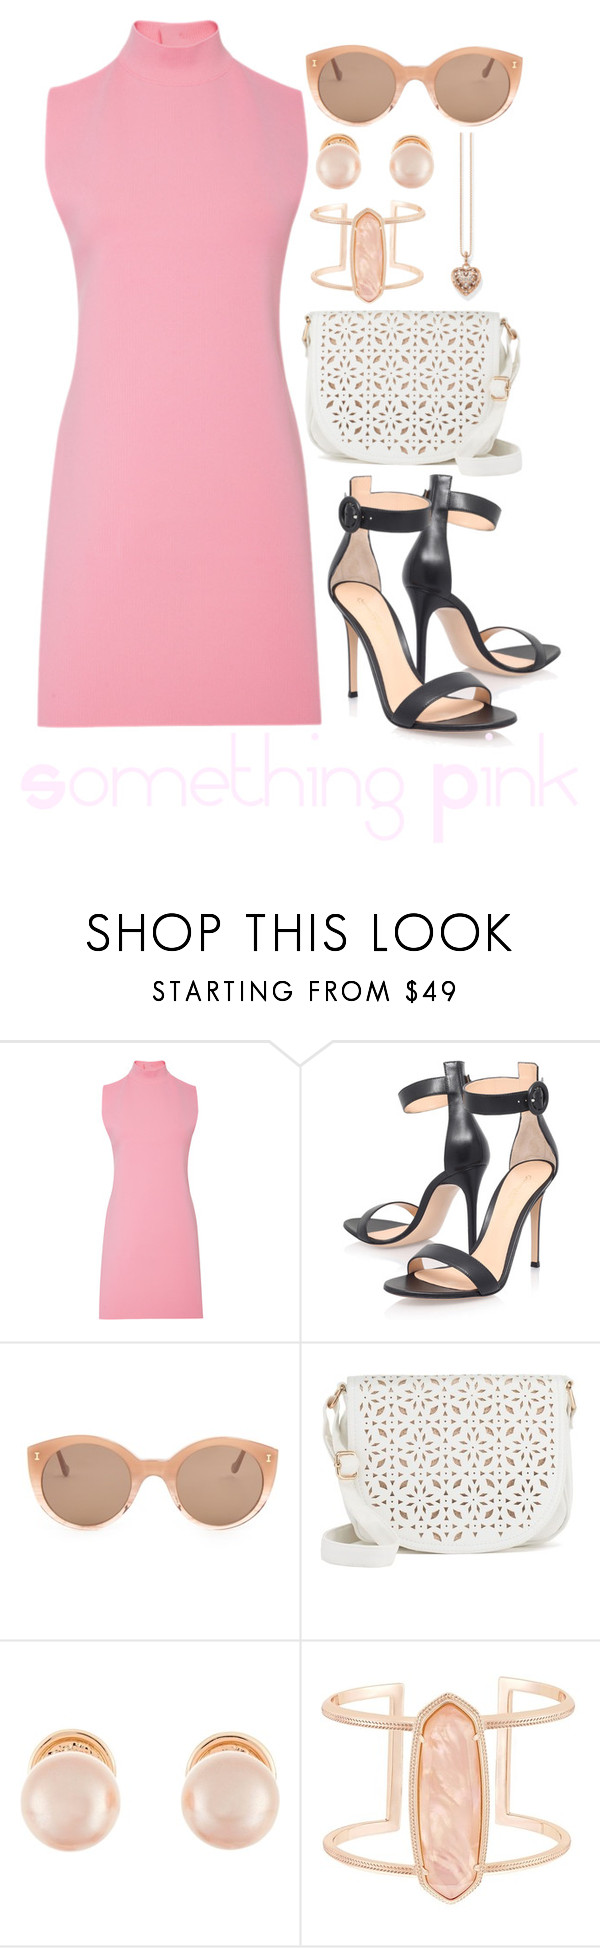 """""""Something Pink"""" by megan-walz21 ❤ liked on Polyvore featuring Marni, Gianvito Rossi, Illesteva, Under One Sky, Kenneth Jay Lane, Kendra Scott and Thomas Sabo"""